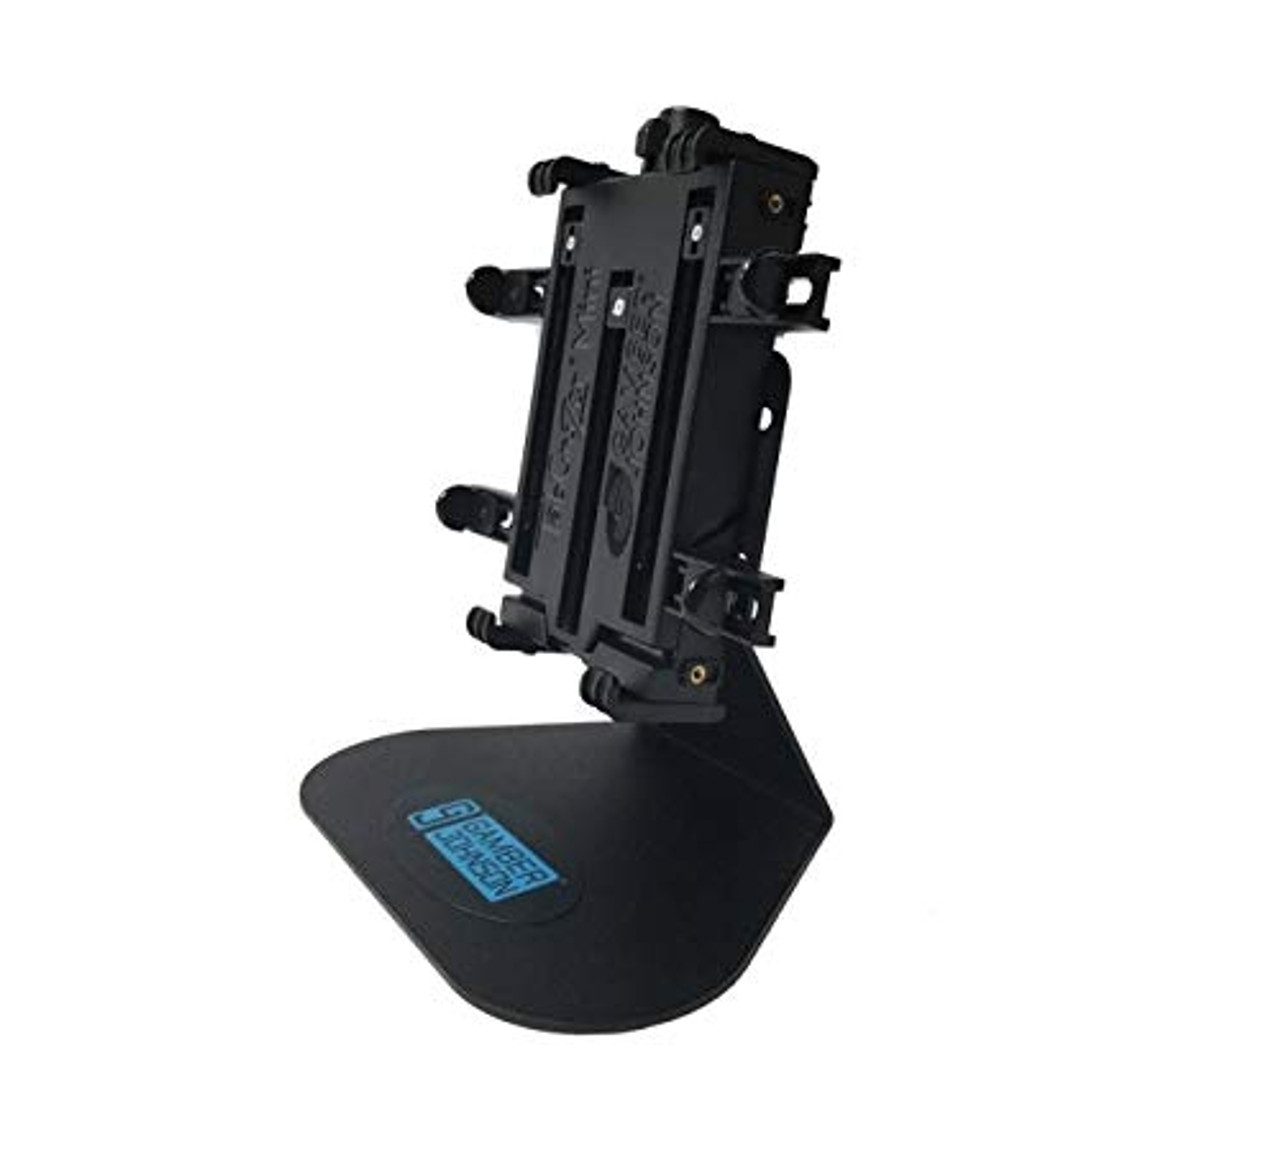 Universal Small Tablet Desktop Mount KIT (Includes 16434 Tablet Display Base, 7160-0774 TabCruzer Mini Universal Cradle) (7170-0589) | 0414XL2TBUJ